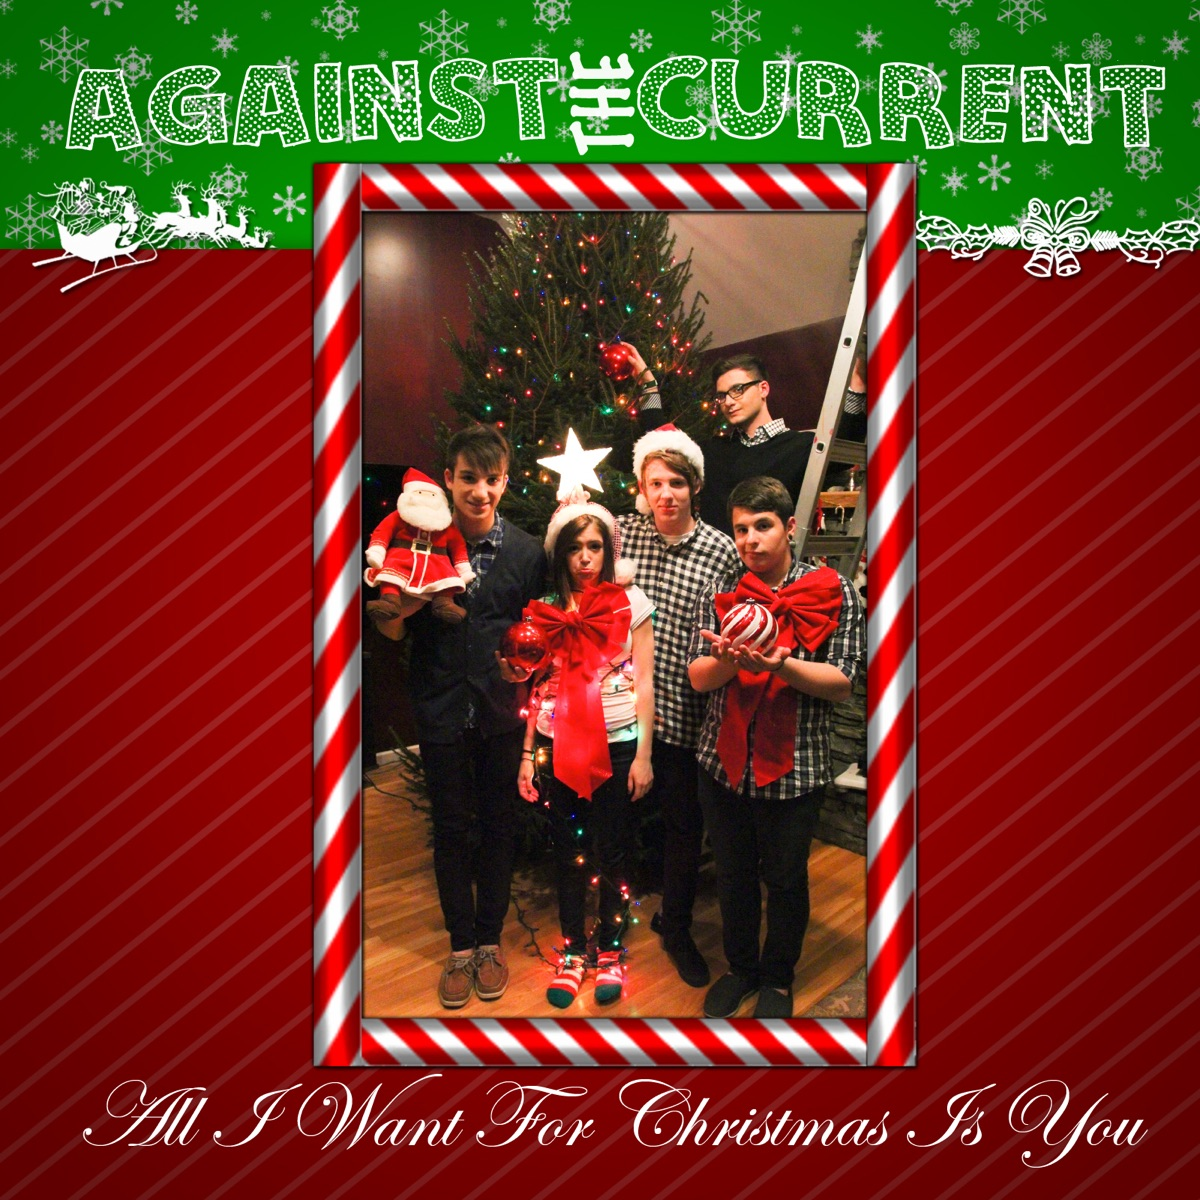 Who Wrote All I Want For Christmas Is You.All I Want For Christmas Is You Single Album Cover By